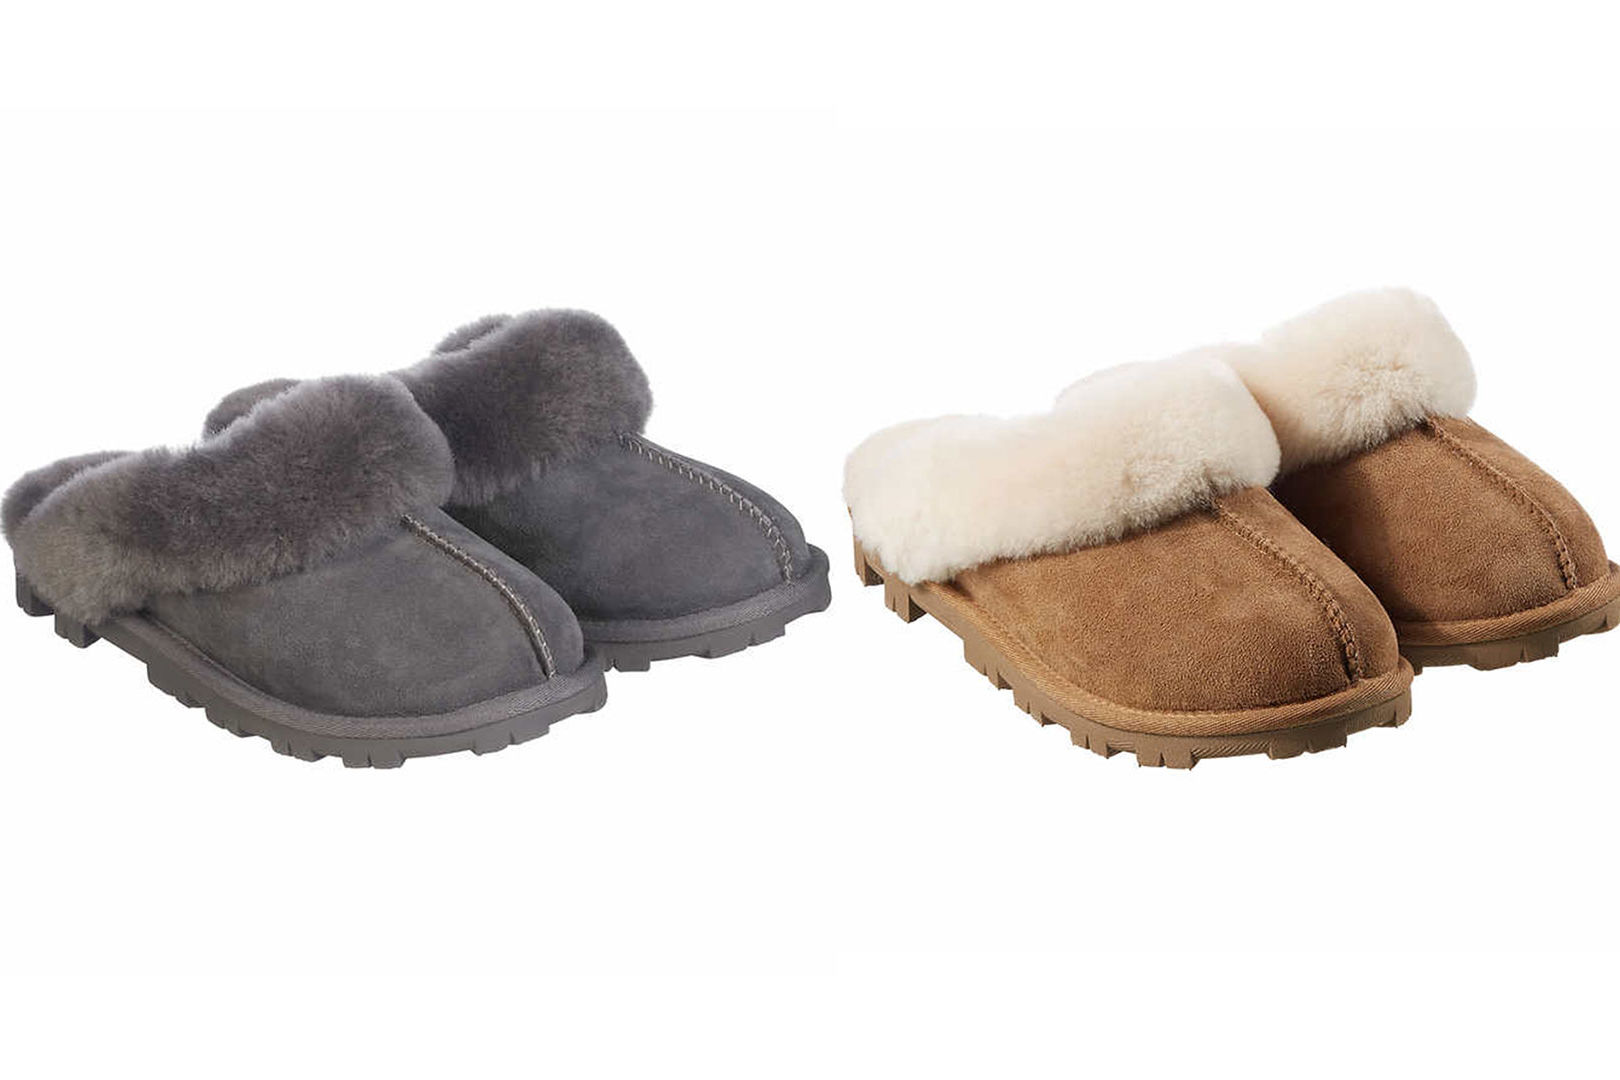 Shoppers Can't Get Enough of Costco's $20 Version of UGG's Comfiest Slippers